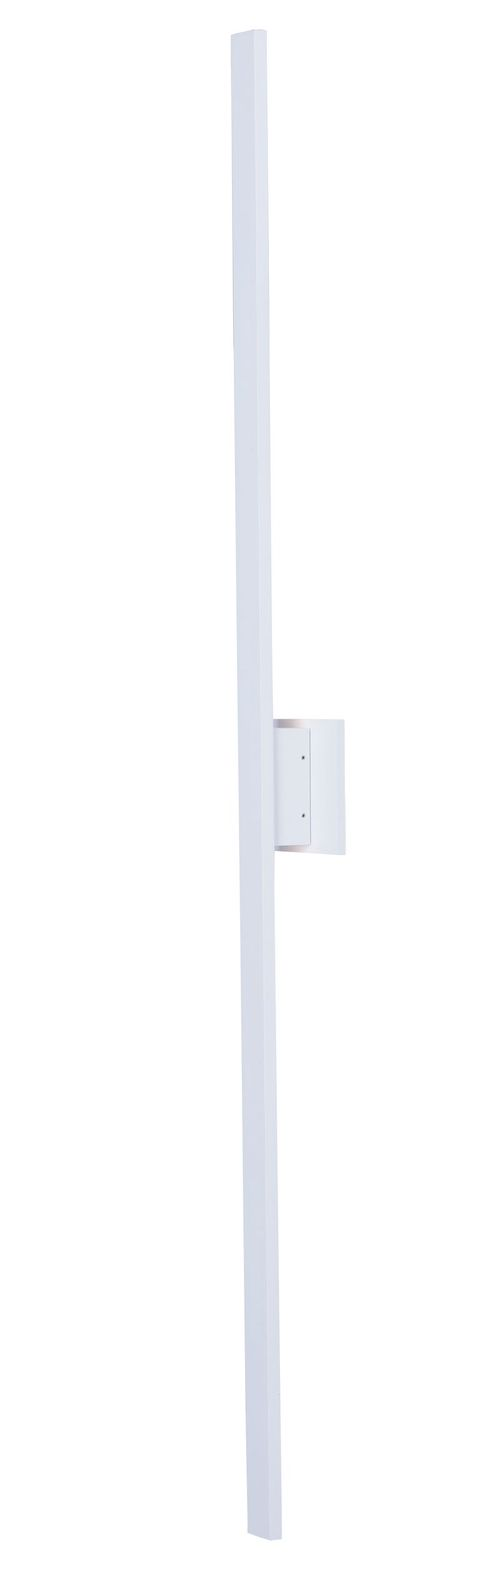 """Alumilux Sconce 51"""" 2 Light Outdoor Wall Mount Light in White"""